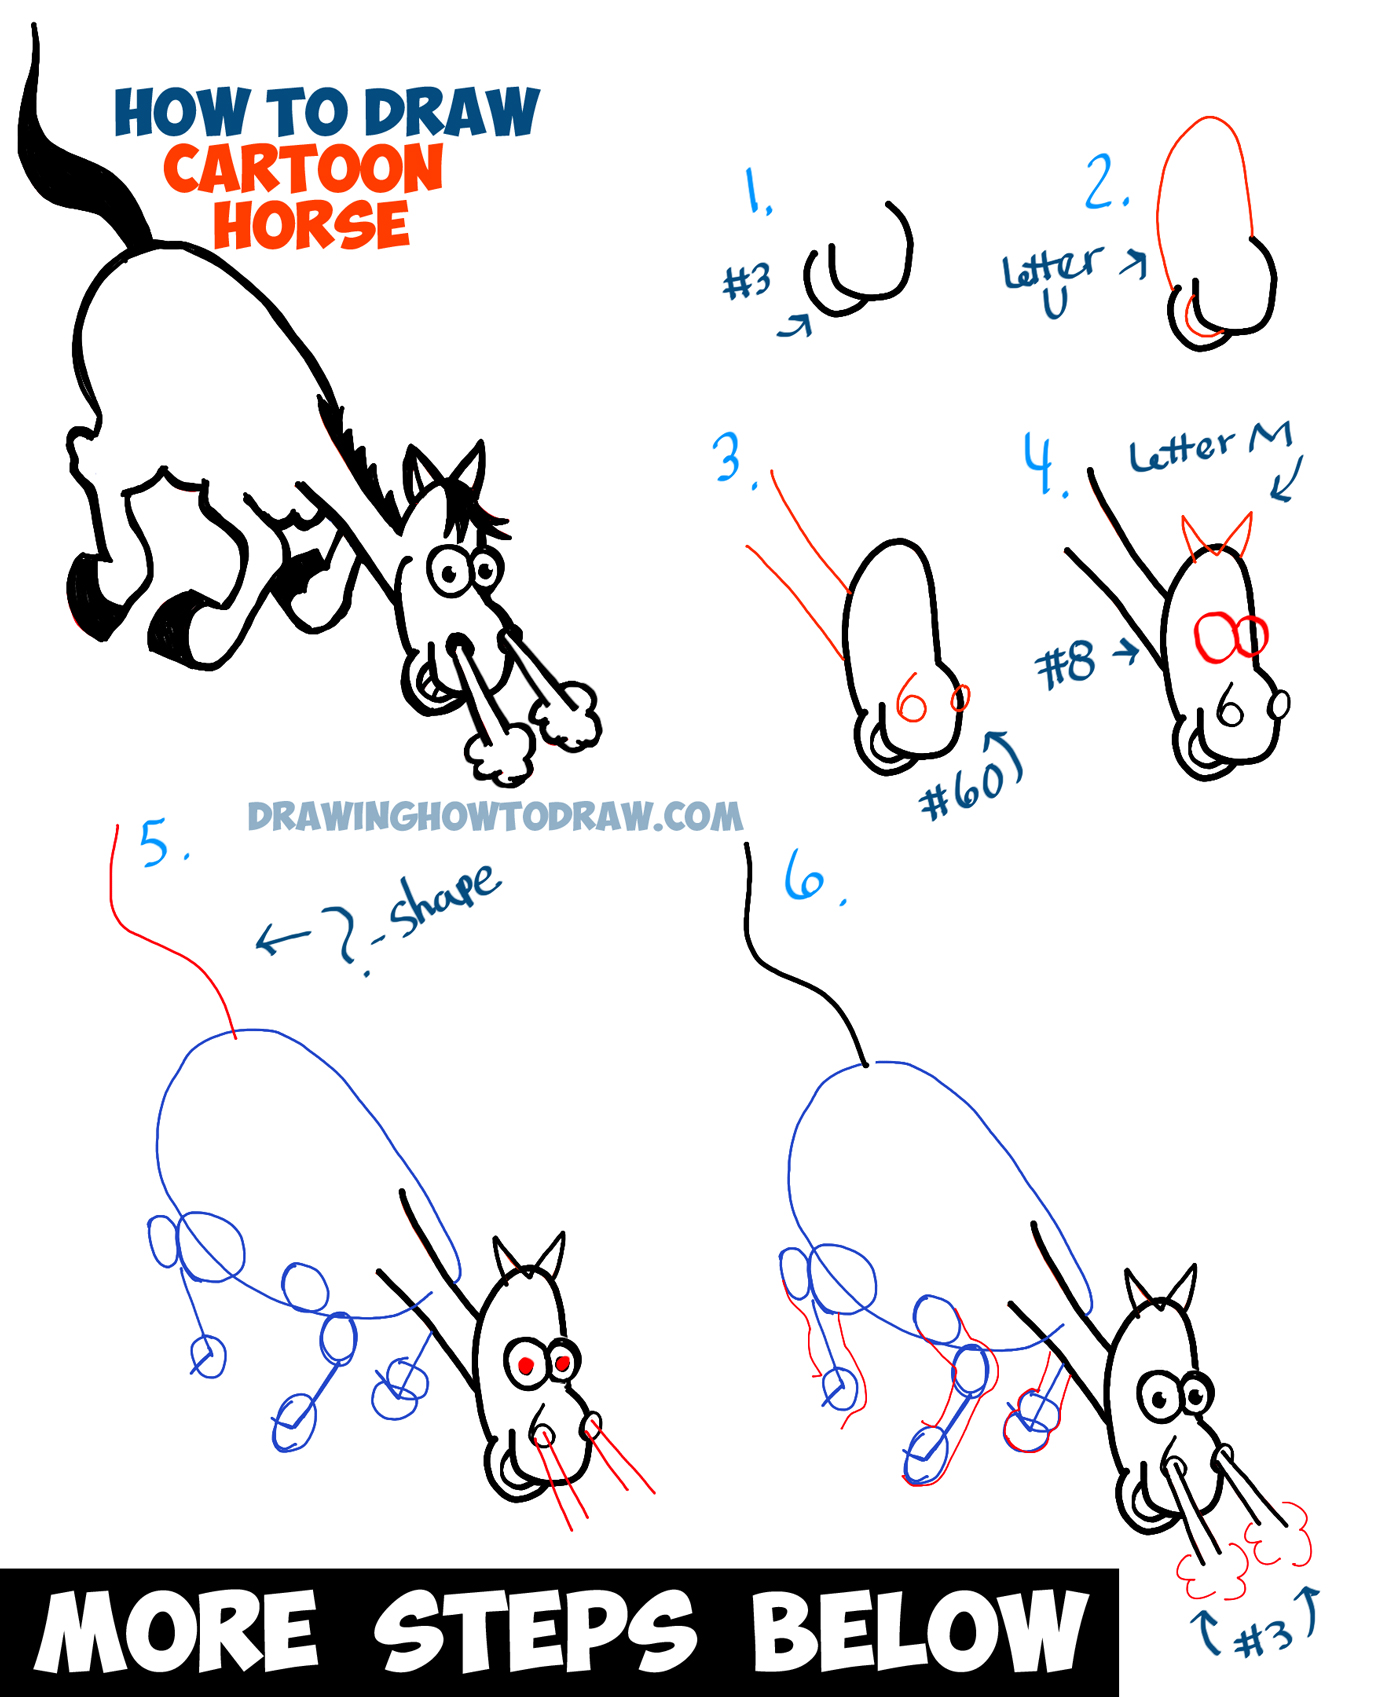 How to Draw a Cartoon Horse Galloping / Charging - Step by Step Tutorial